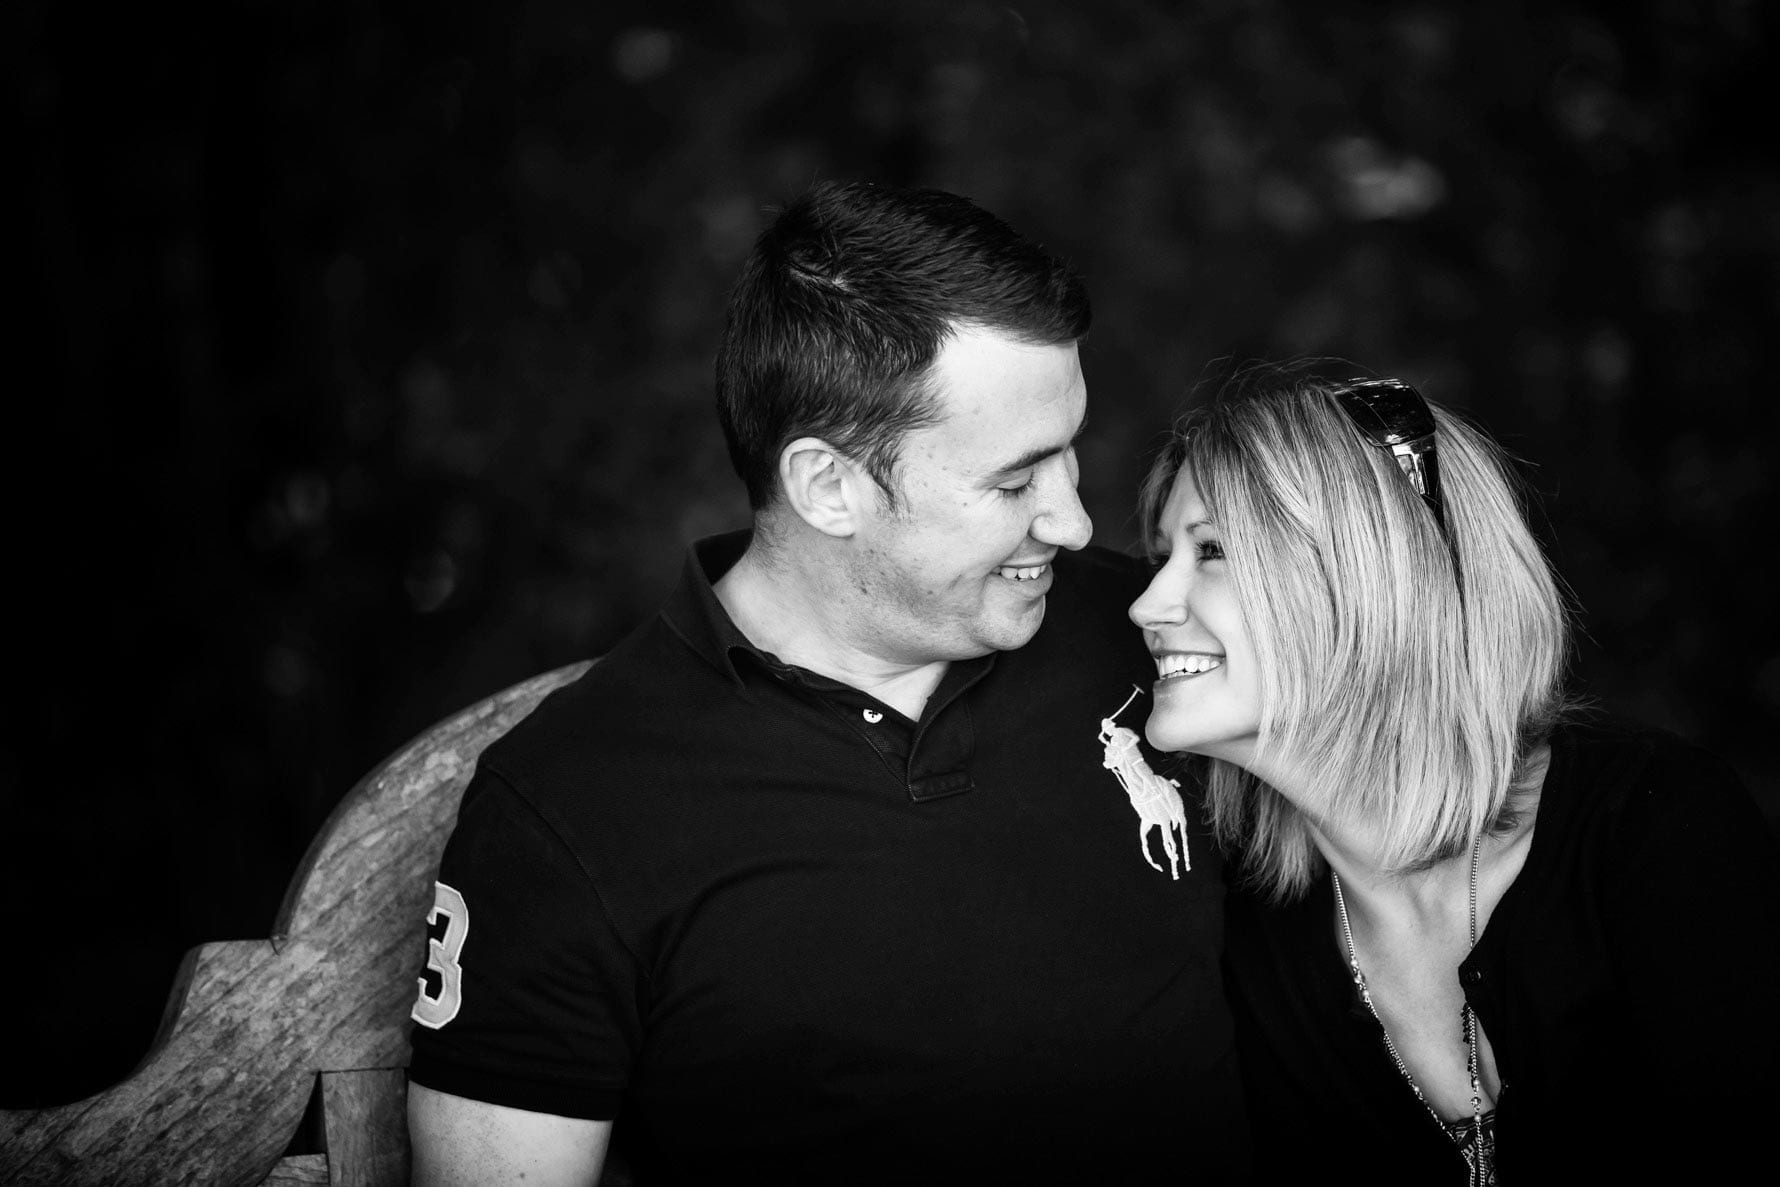 Katie & Dan smiling during an engagement photoshoot by Hertfordshire wedding photographer